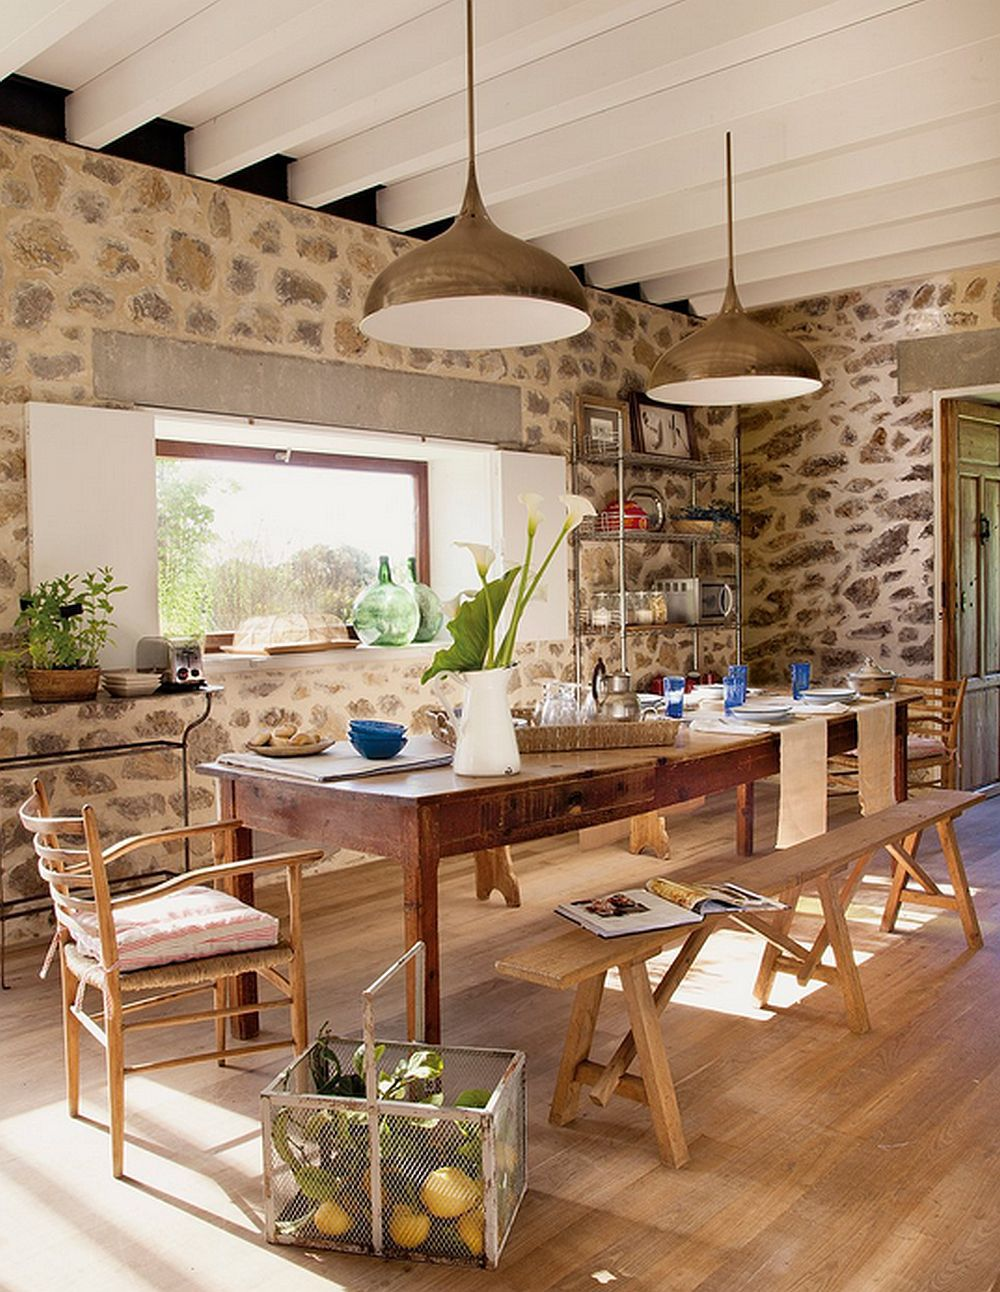 decorar una casa rural - comedor